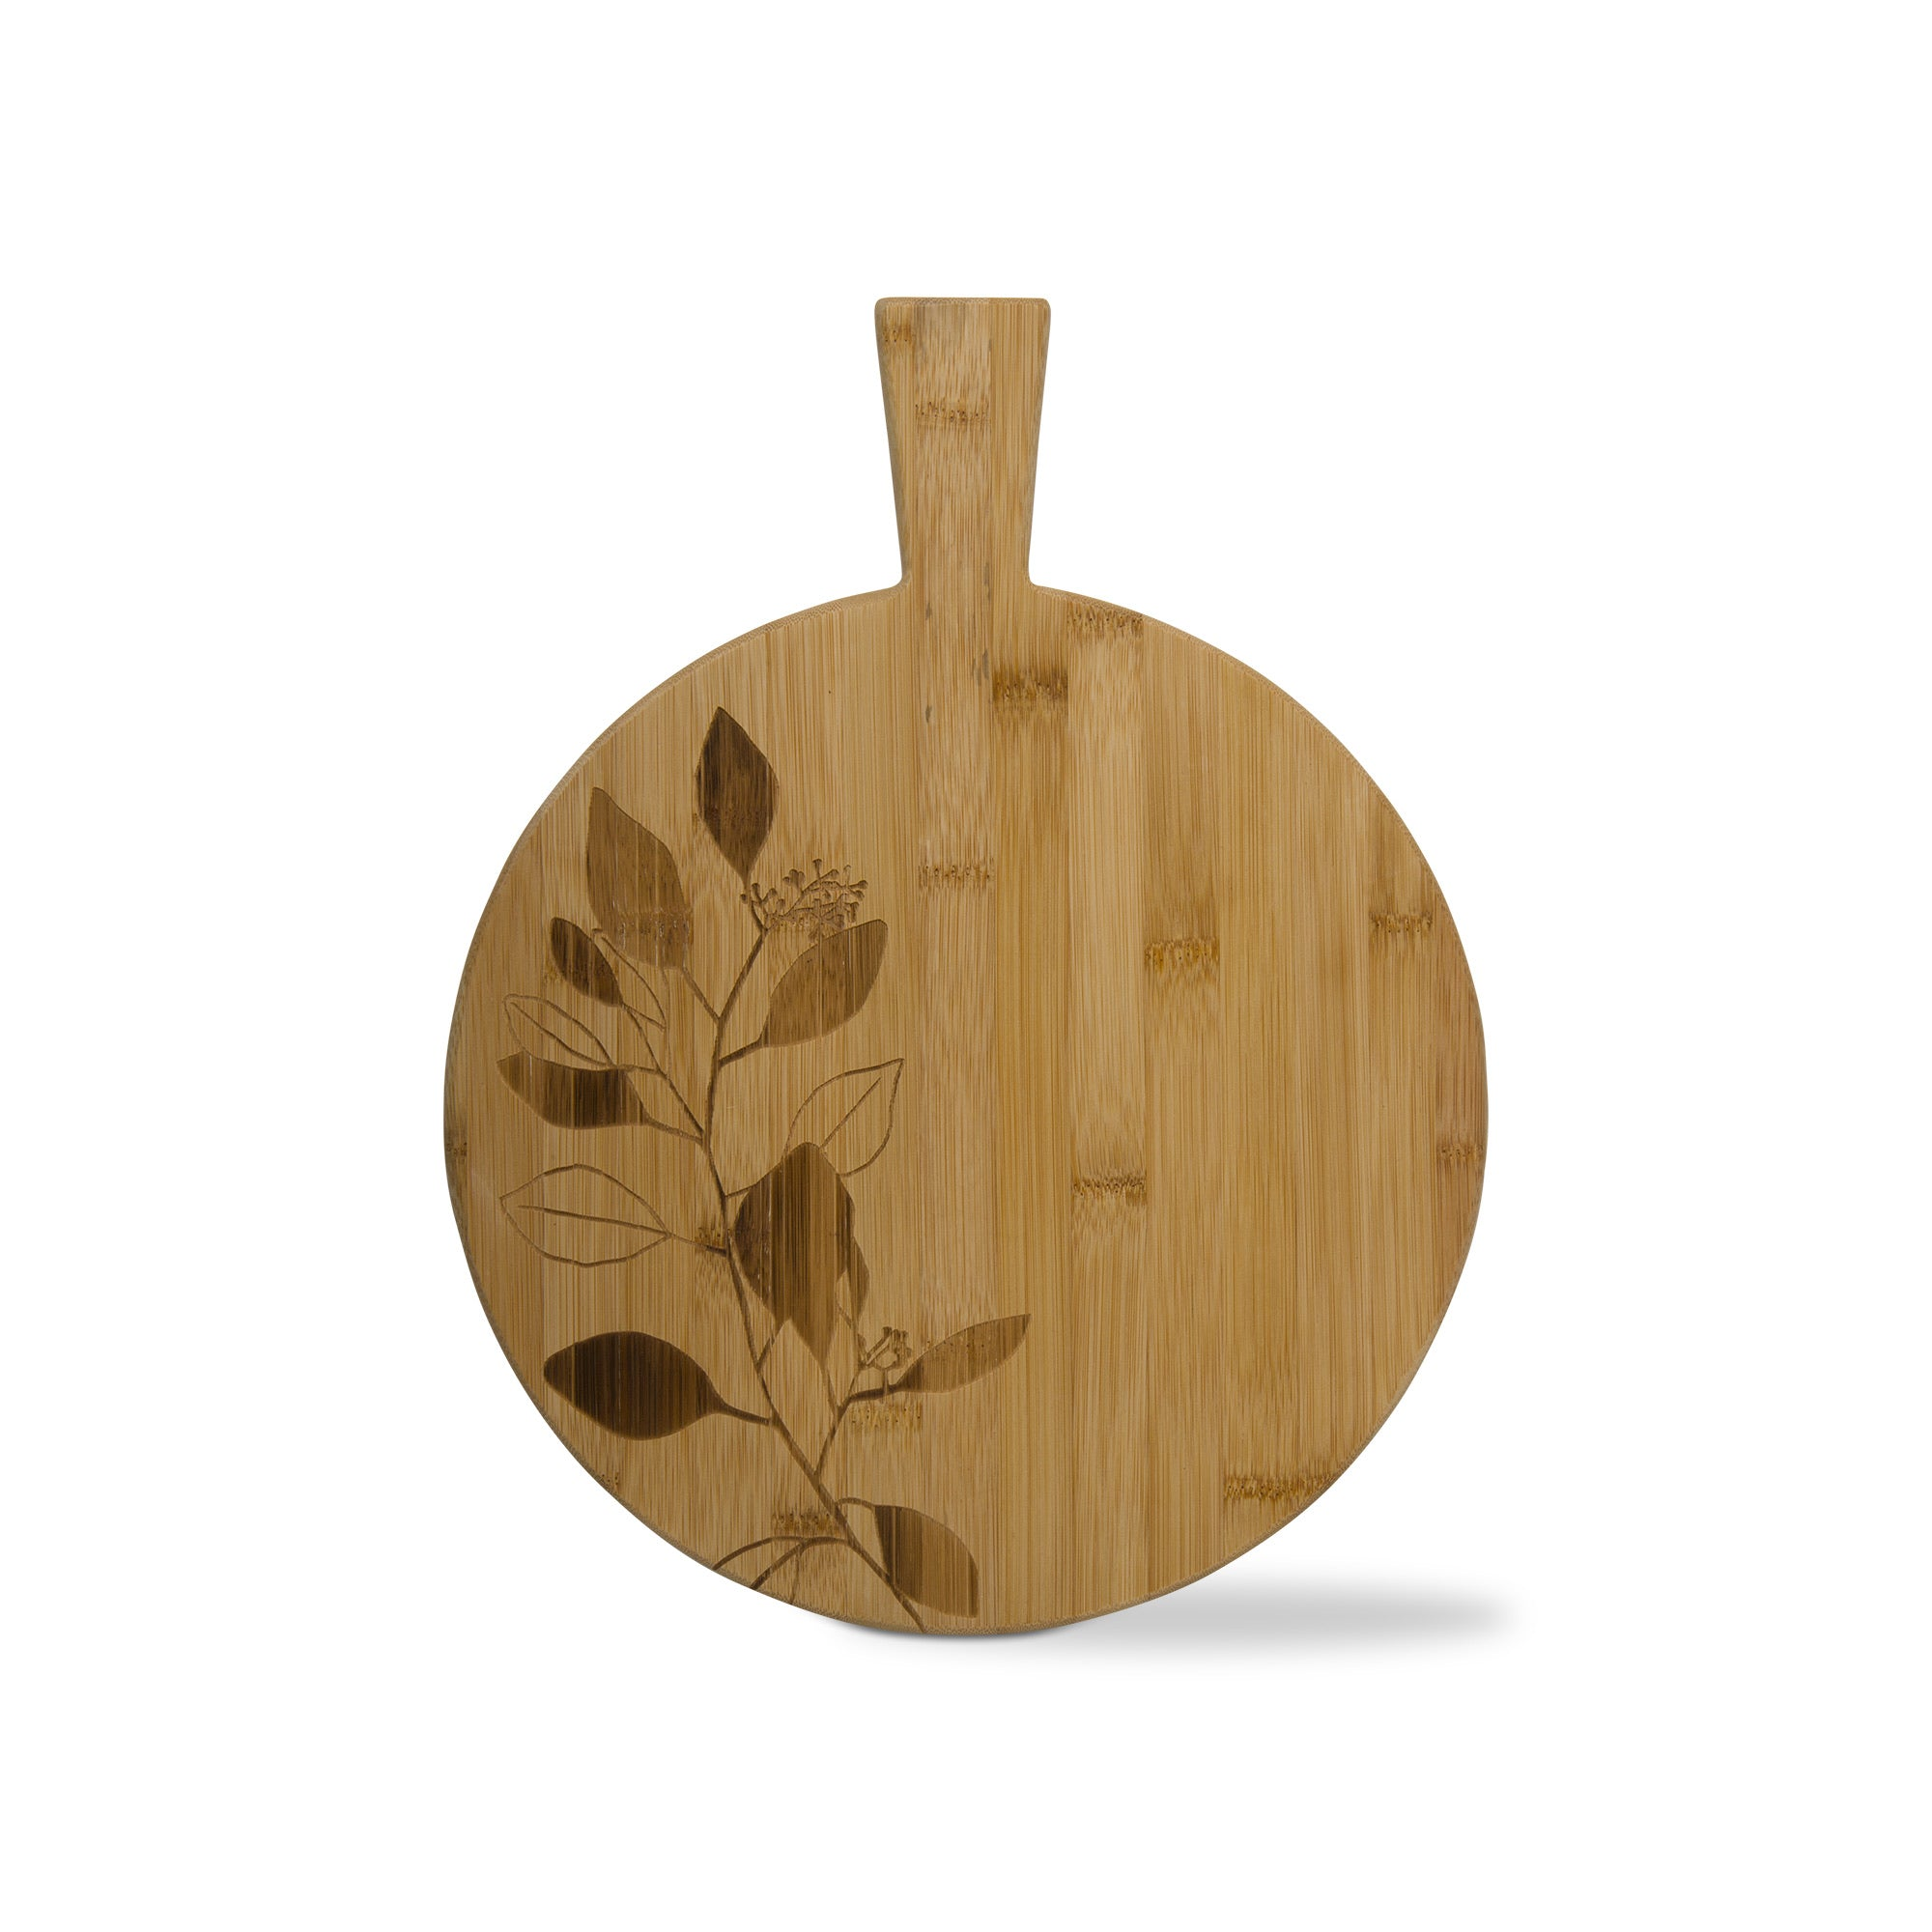 Eucalyptus Bamboo Cheese Board